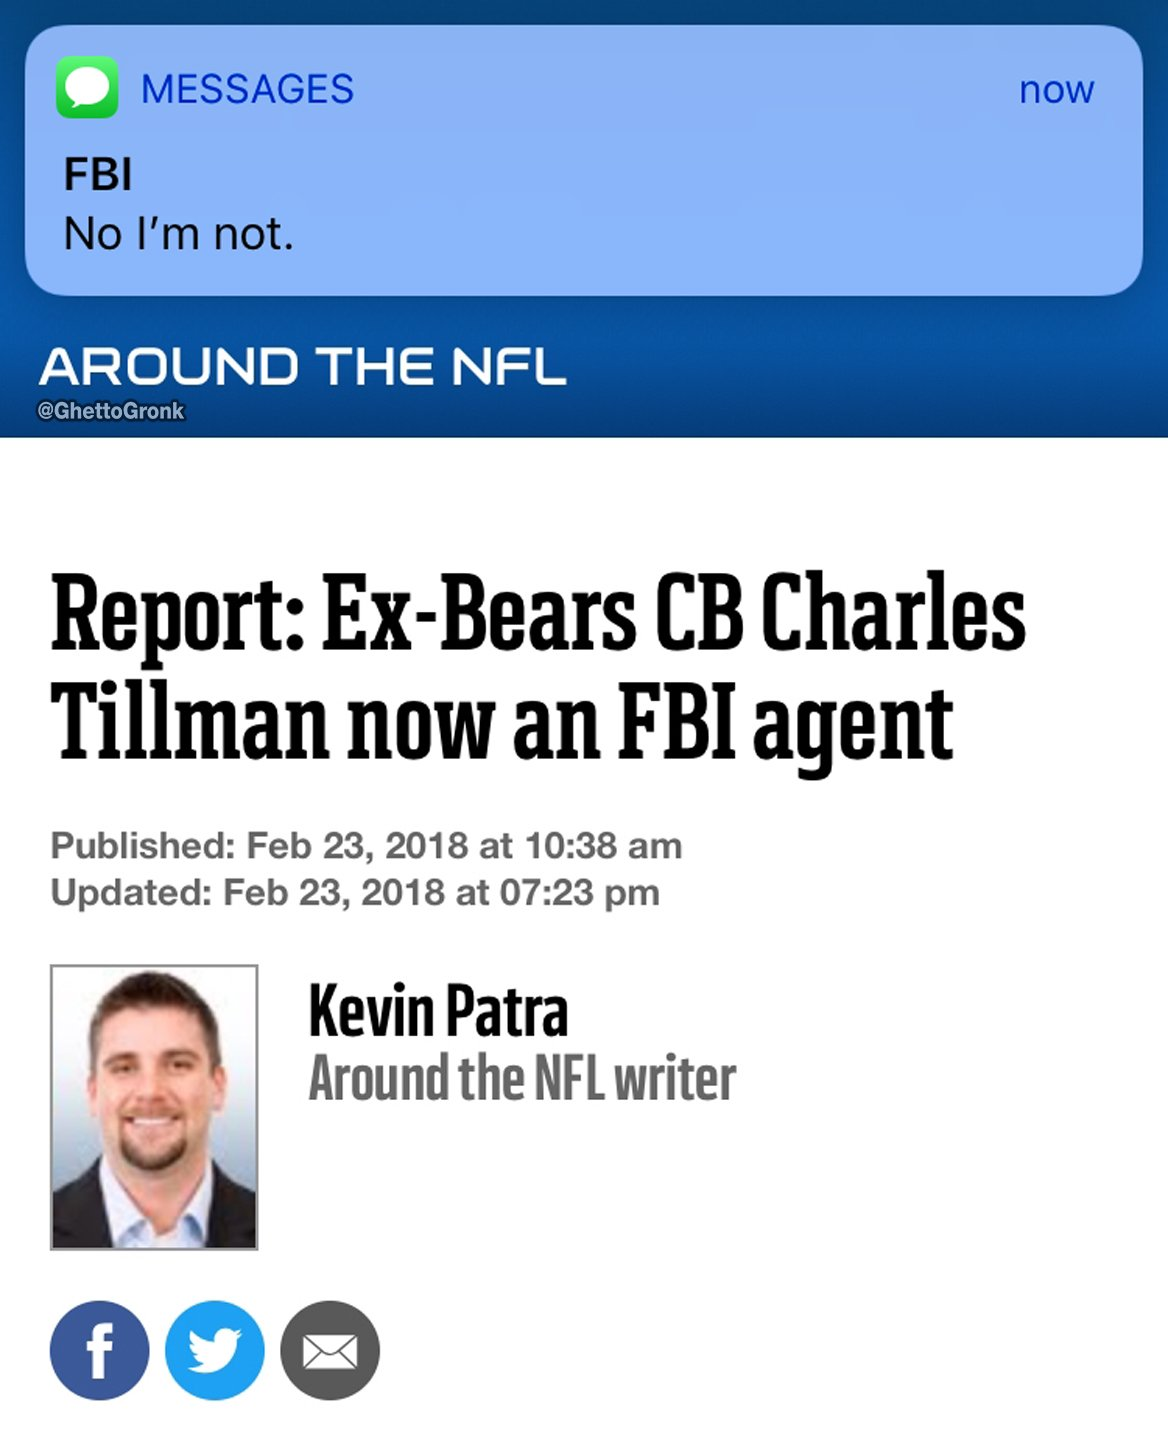 Now he can investigate why the Bears can never beat the Packers https://t.co/7tfuJWxlzA